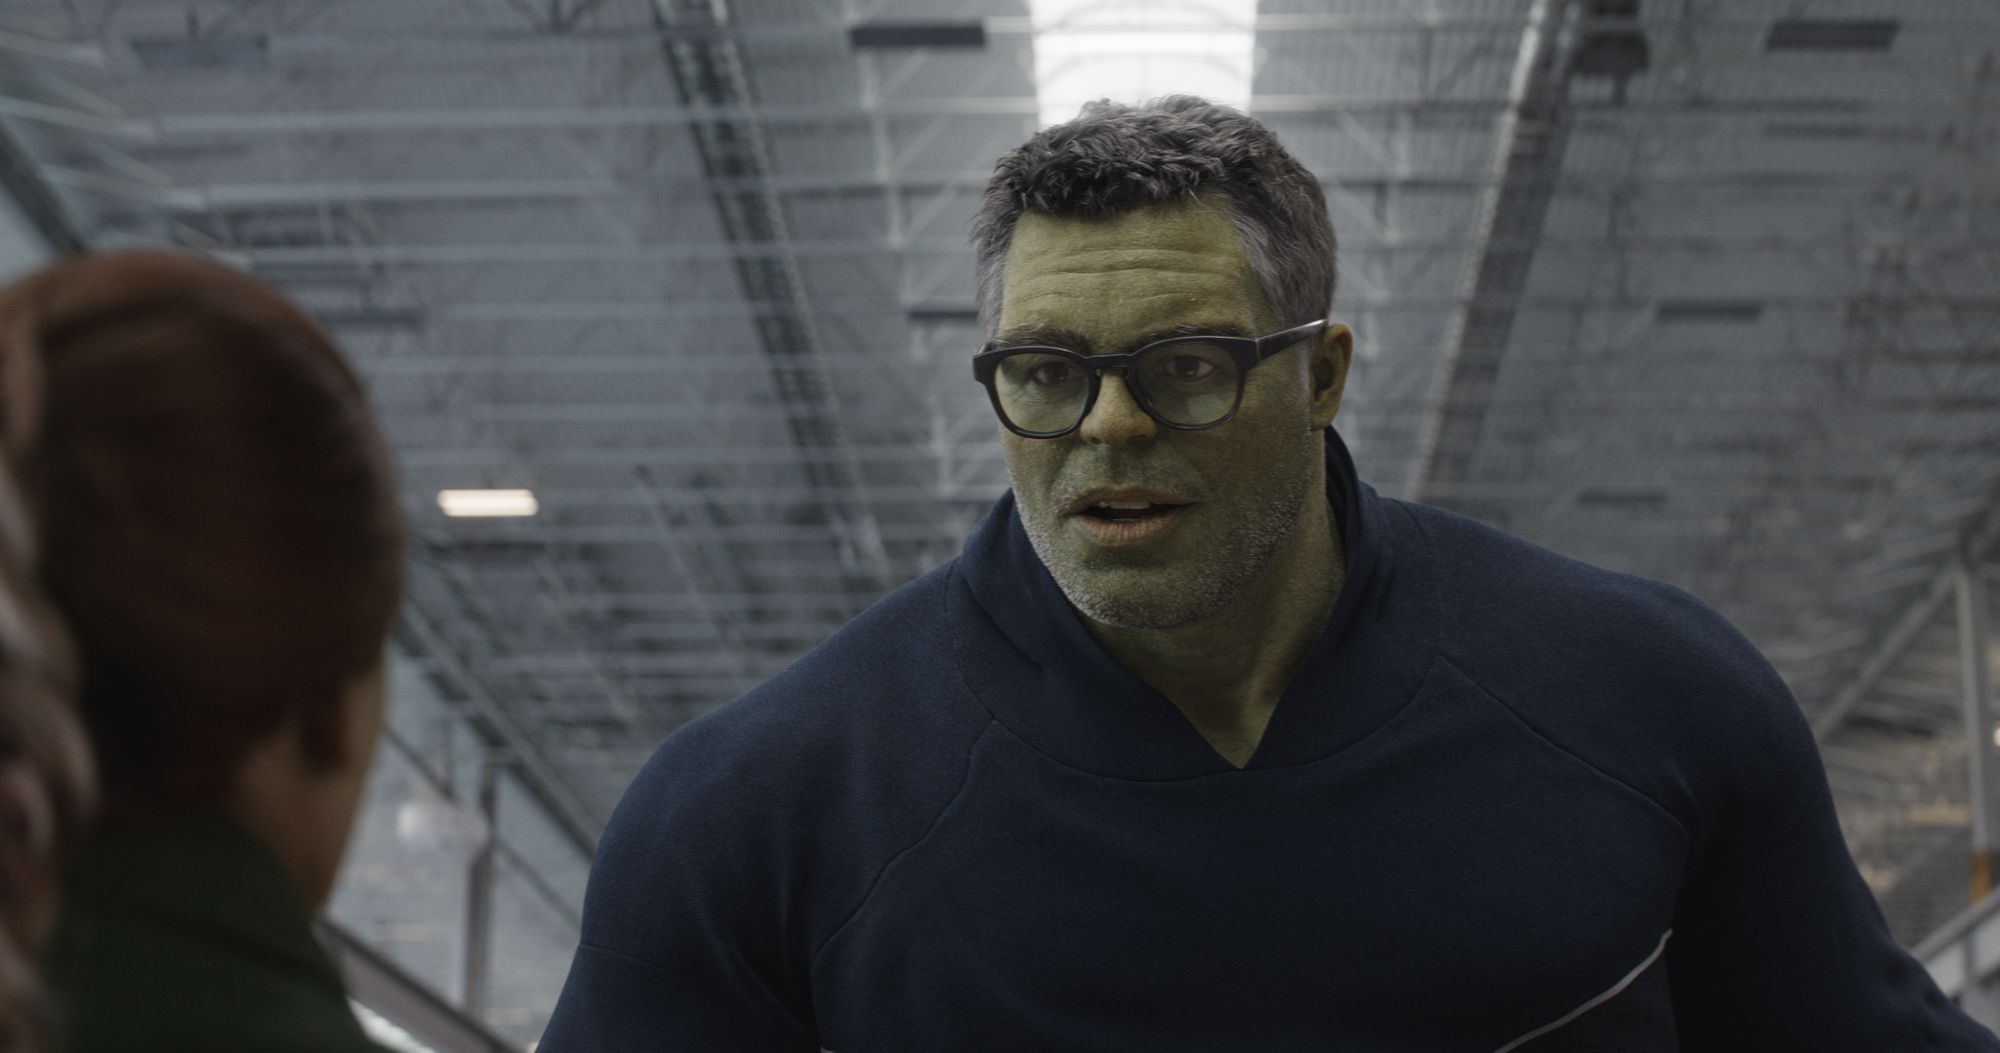 Avengers: Endgame Behind-the-Scenes Images Reveal How Smart Hulk Was Made   Collider